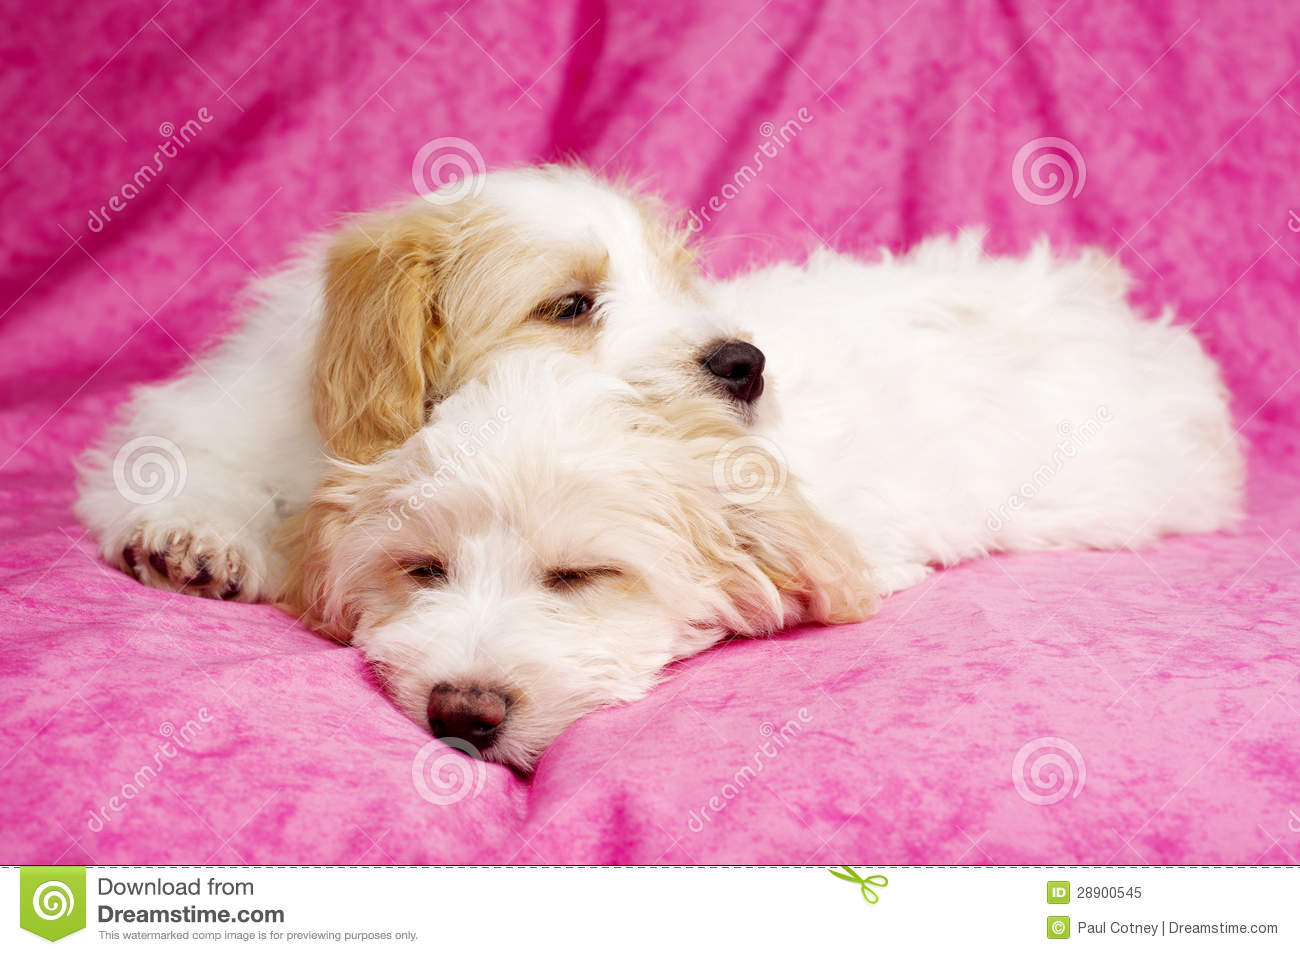 Cute Puppies Sleeping Wallpaper Two Puppies Laid Sleeping On A Pink Background Royalty